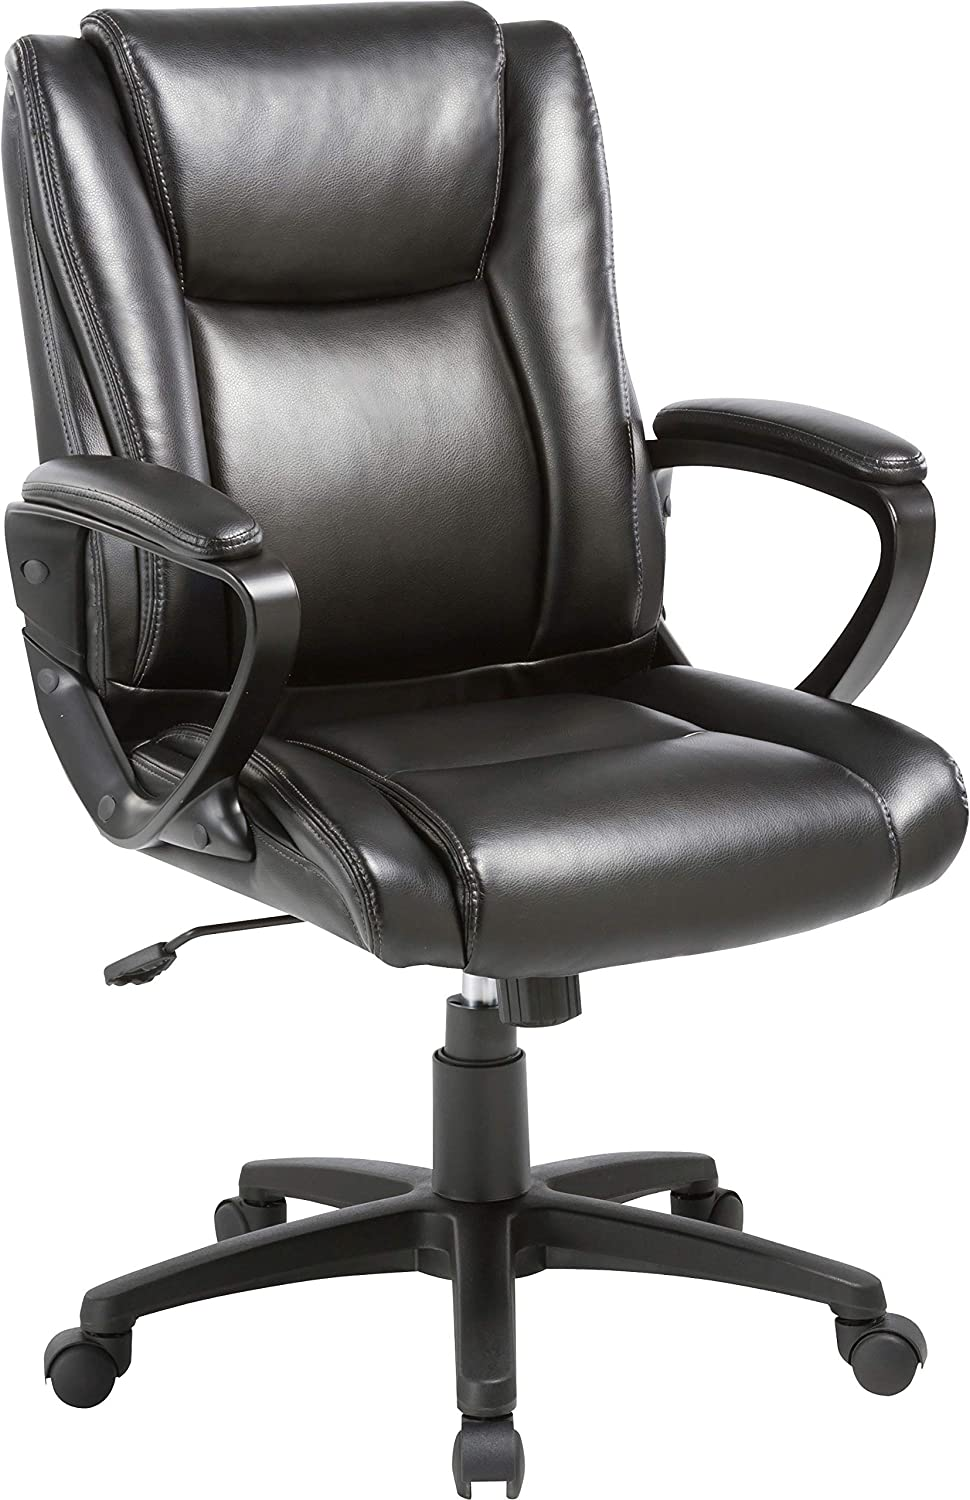 Amazon Com Kovalenthor Ergonomic Office Chair Desk Chair Computer Chair Task Rolling Swivel Modern High Back Pu Leather Executive Chair With Lumbar Support Modern Executive Chair And Computer Desk Chair Black Kitchen